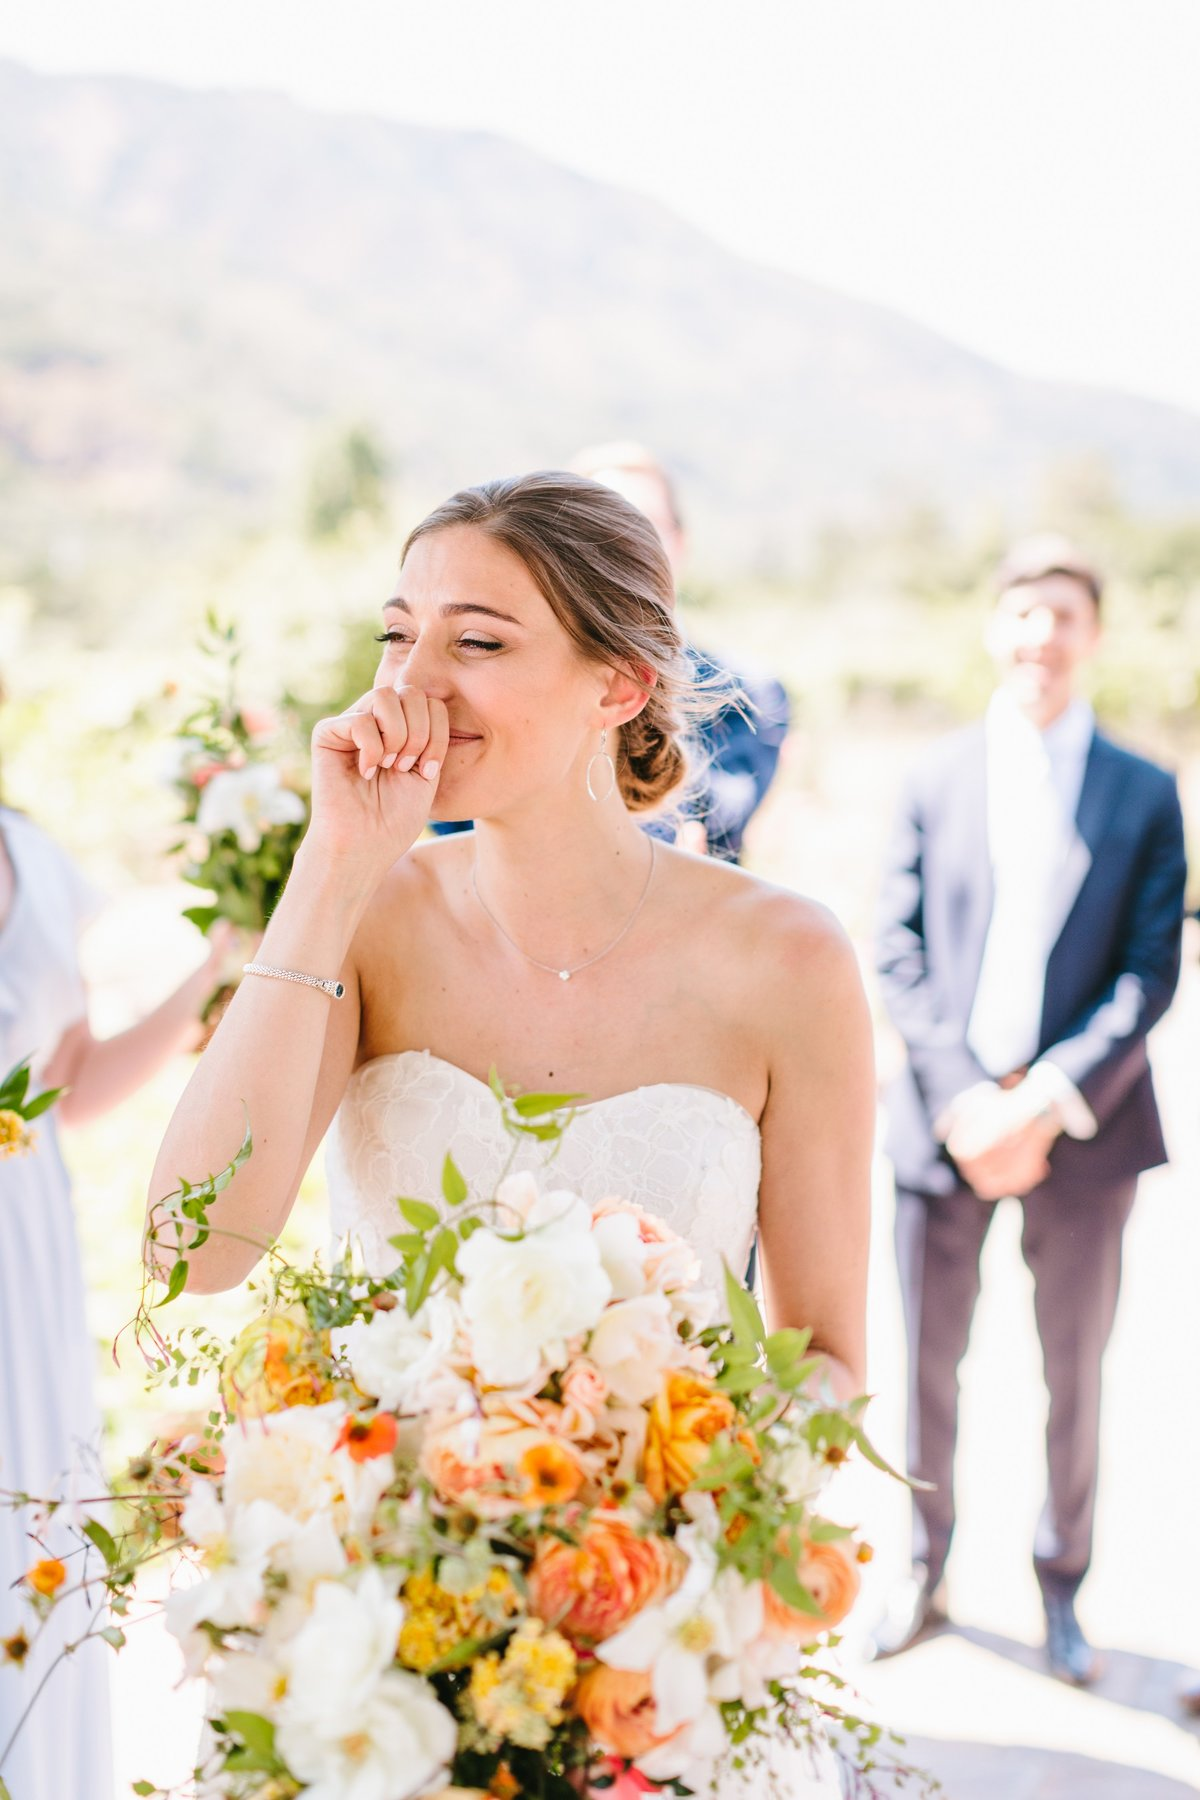 Best California Wedding Photographer-Jodee Debes Photography-20